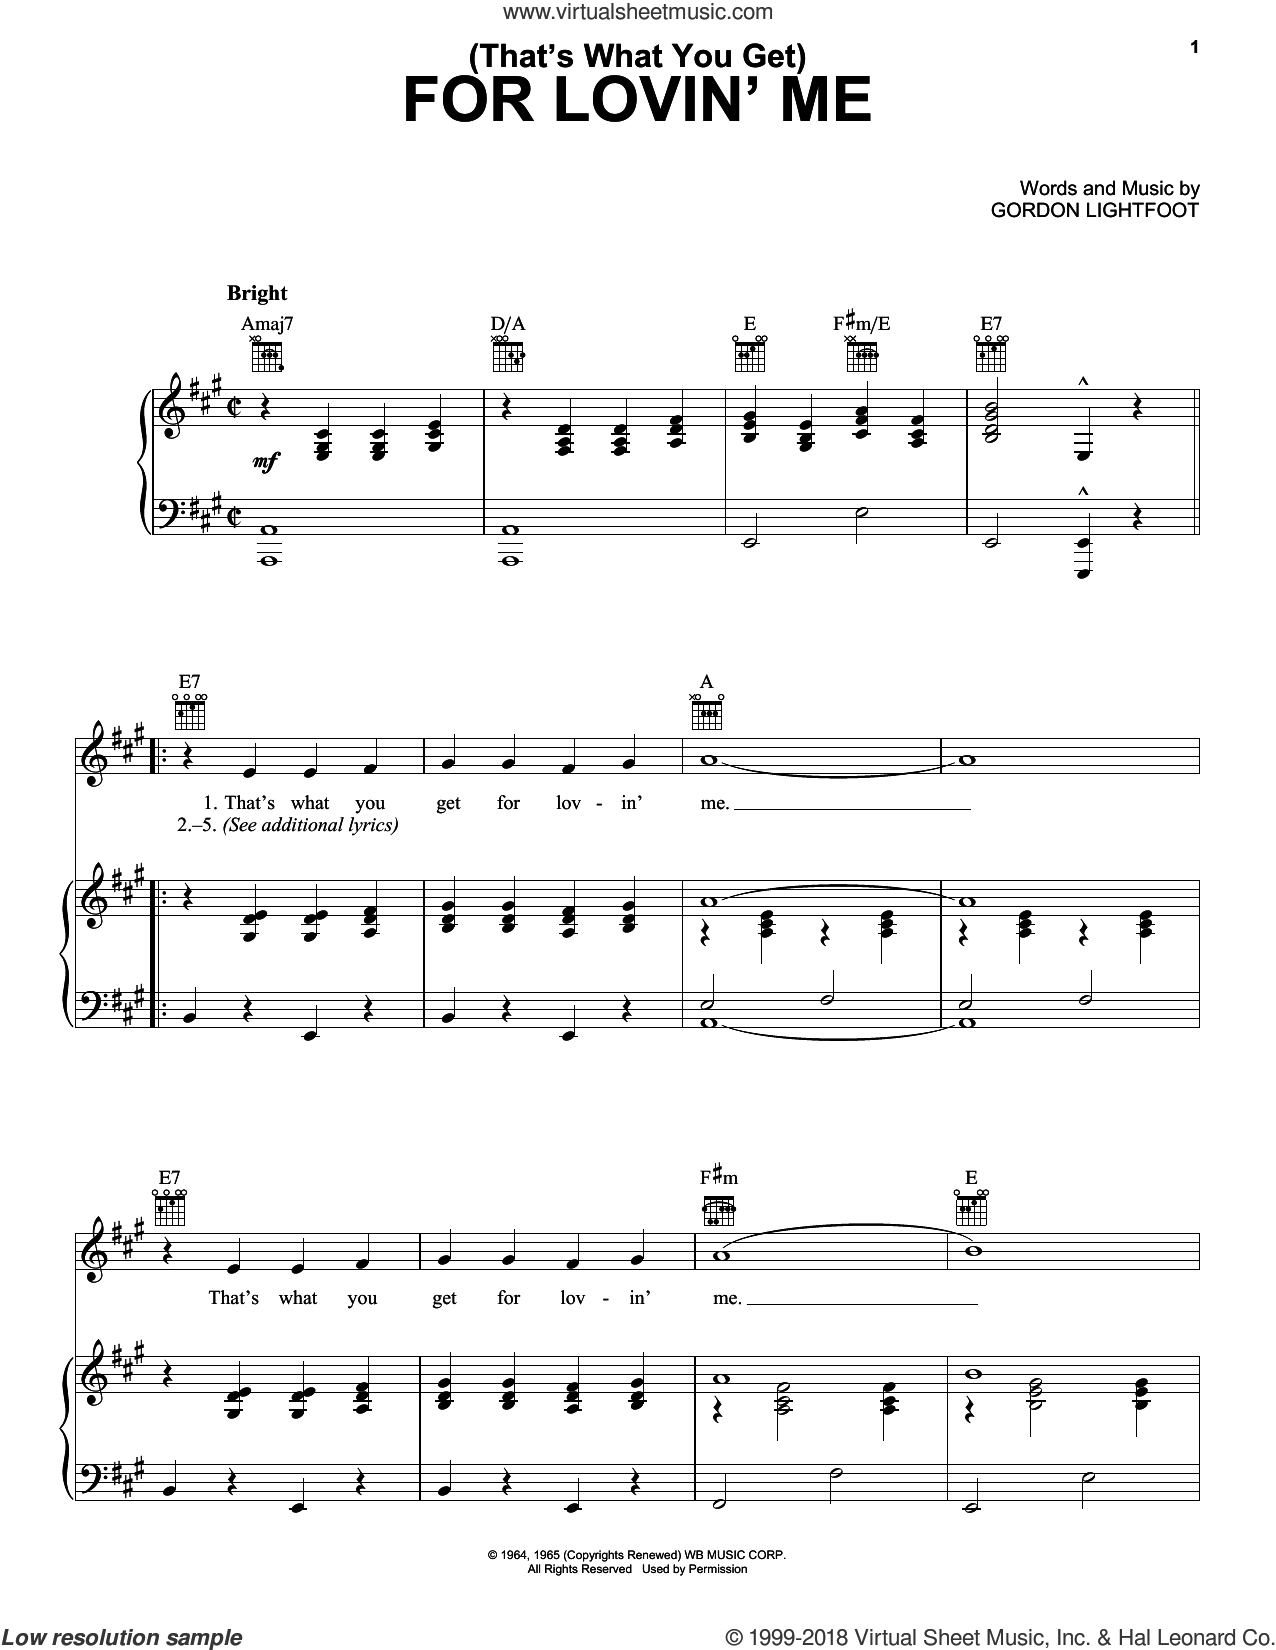 (That's What You Get) For Lovin' Me sheet music for voice, piano or guitar by Peter, Paul & Mary and Gordon Lightfoot, intermediate skill level